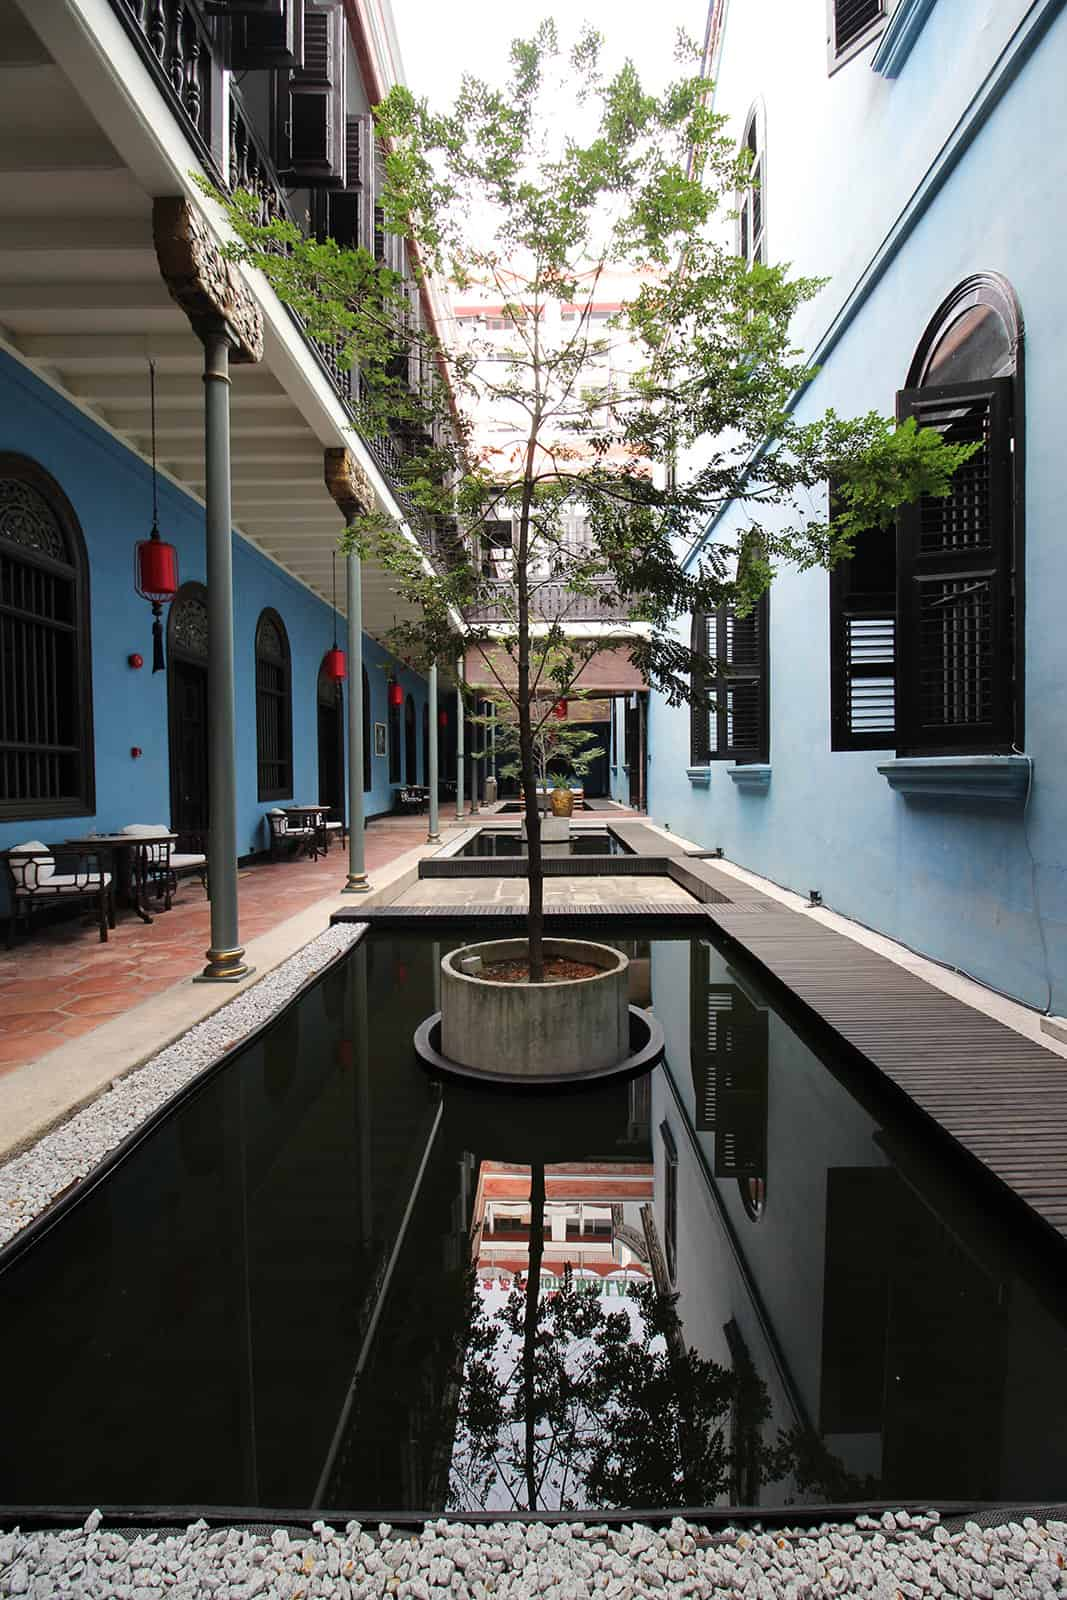 boutique-hotel-penang-island-blue-mansion-architecture-01-1_uqsubw Courtyard